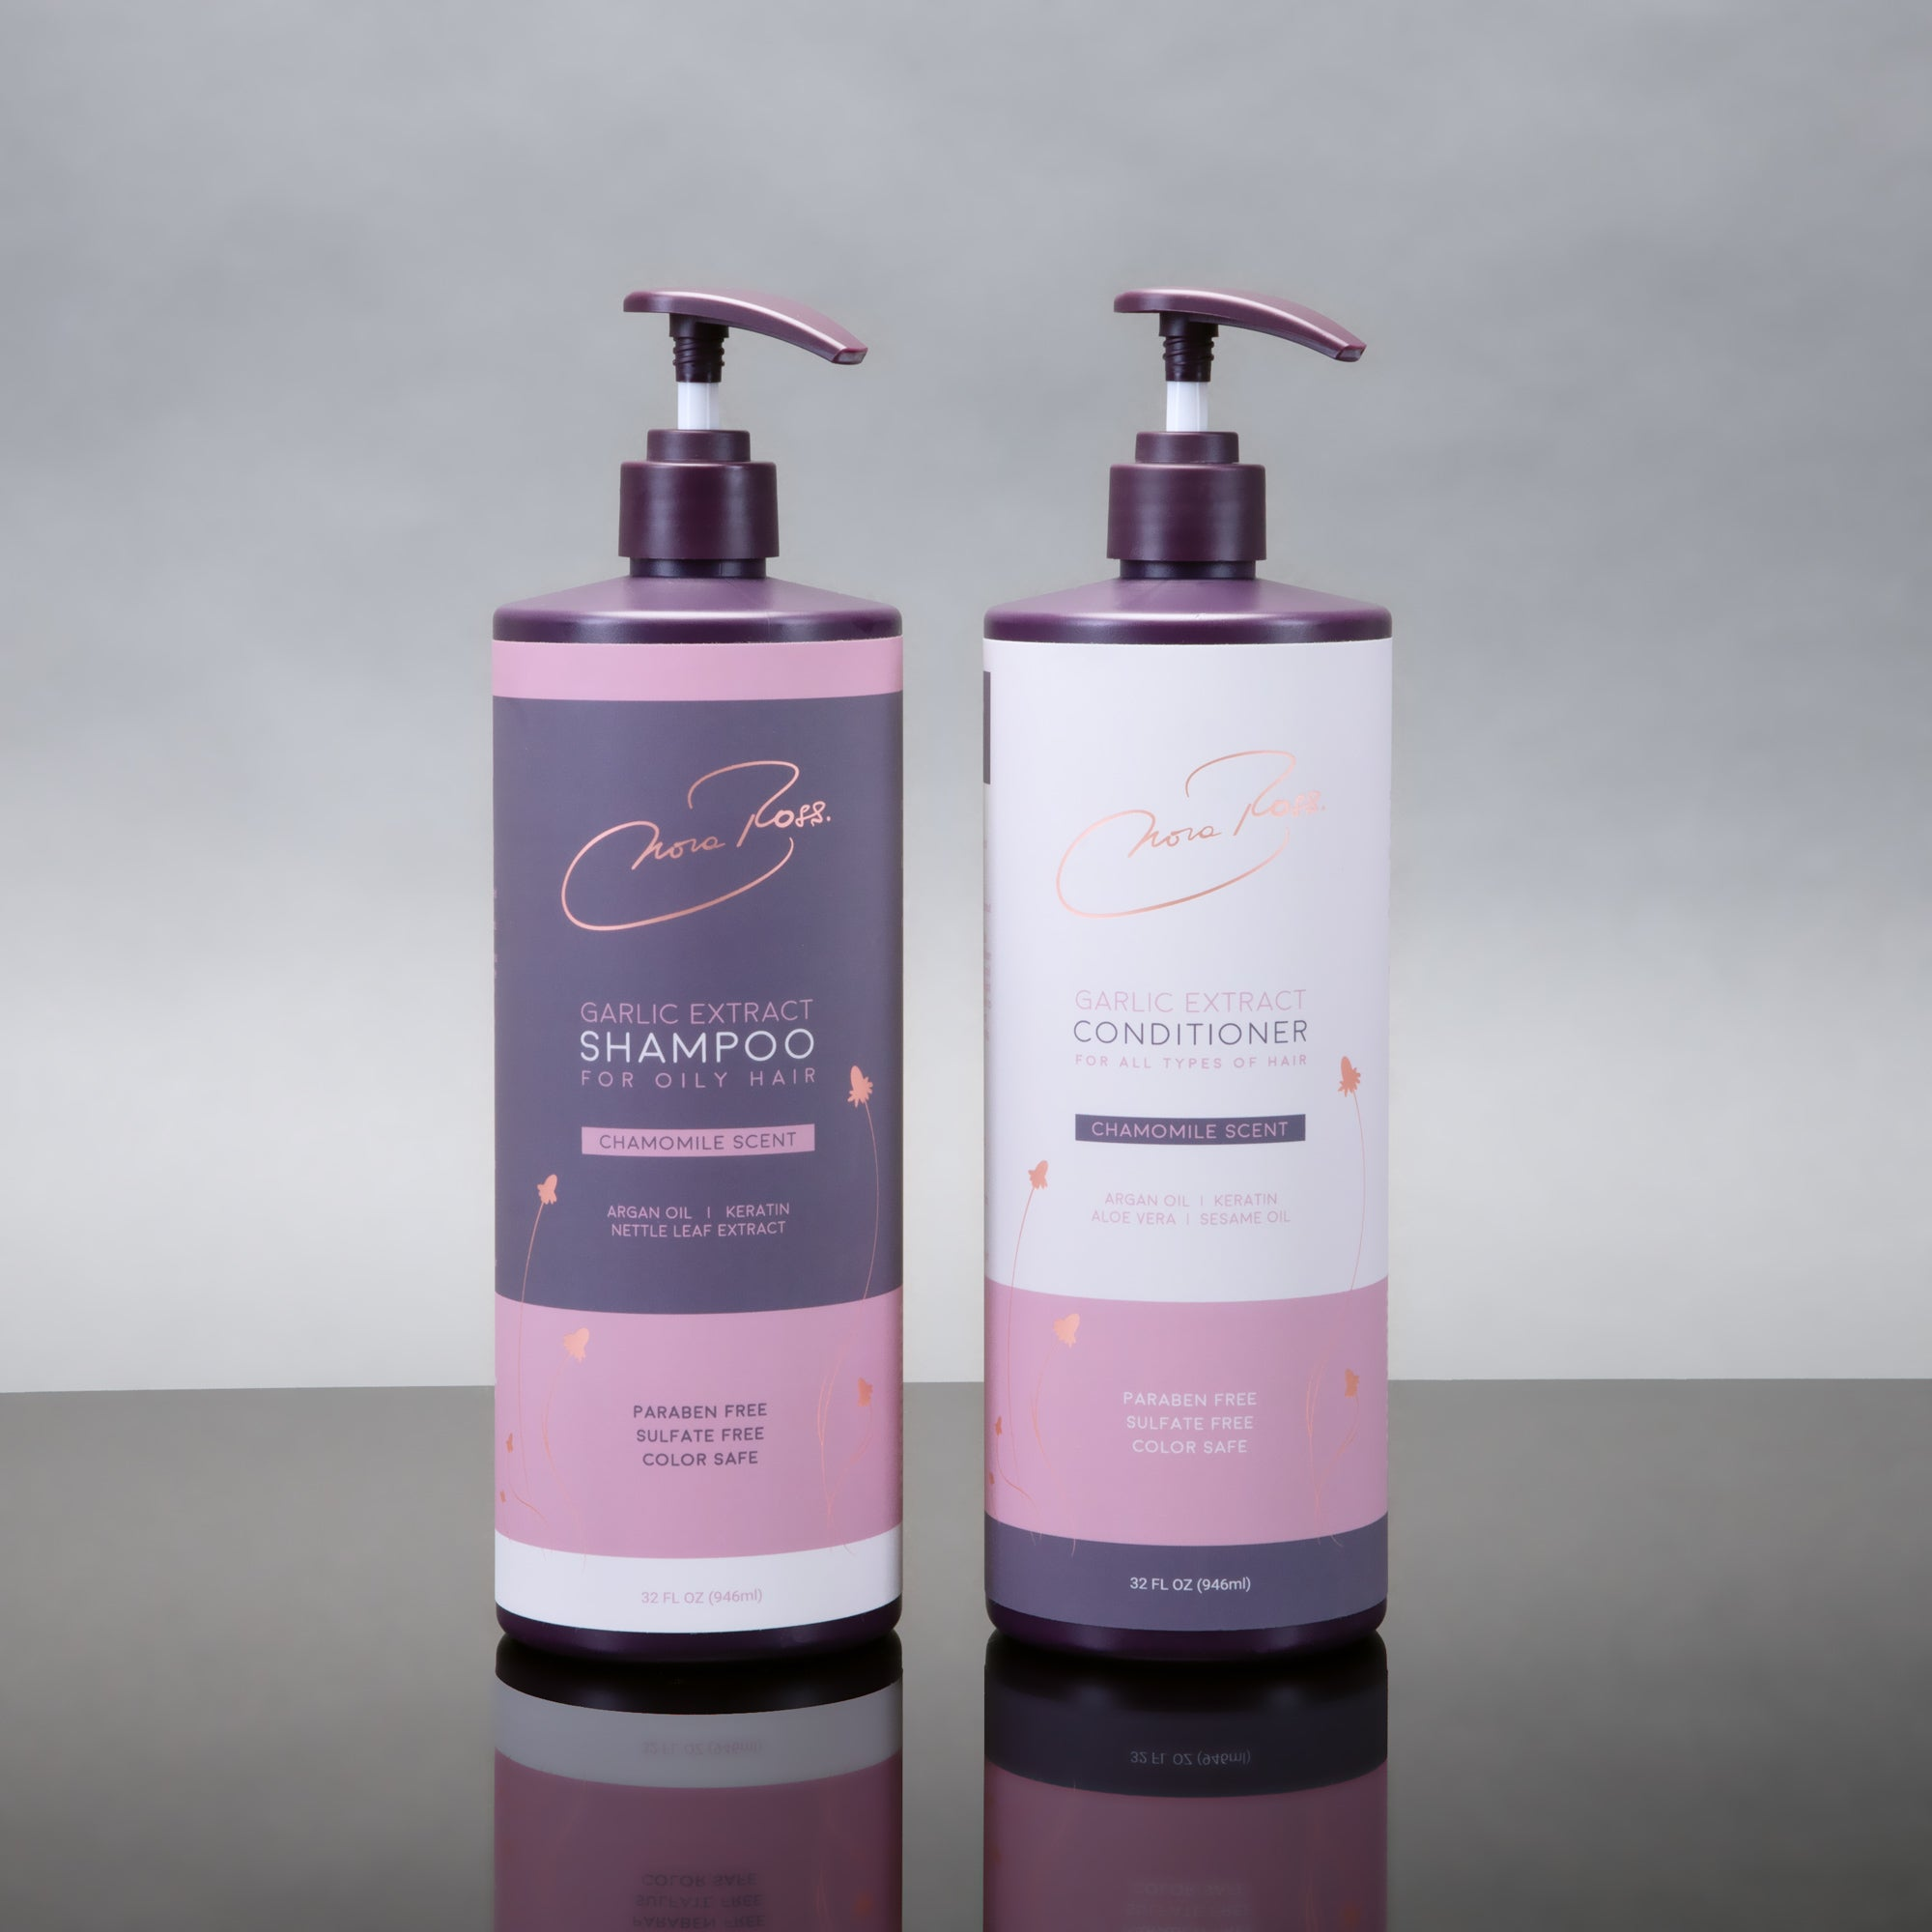 NEW! Paraben and Sulfate Free Garlic Extract Shampoo & Conditioner Bundle